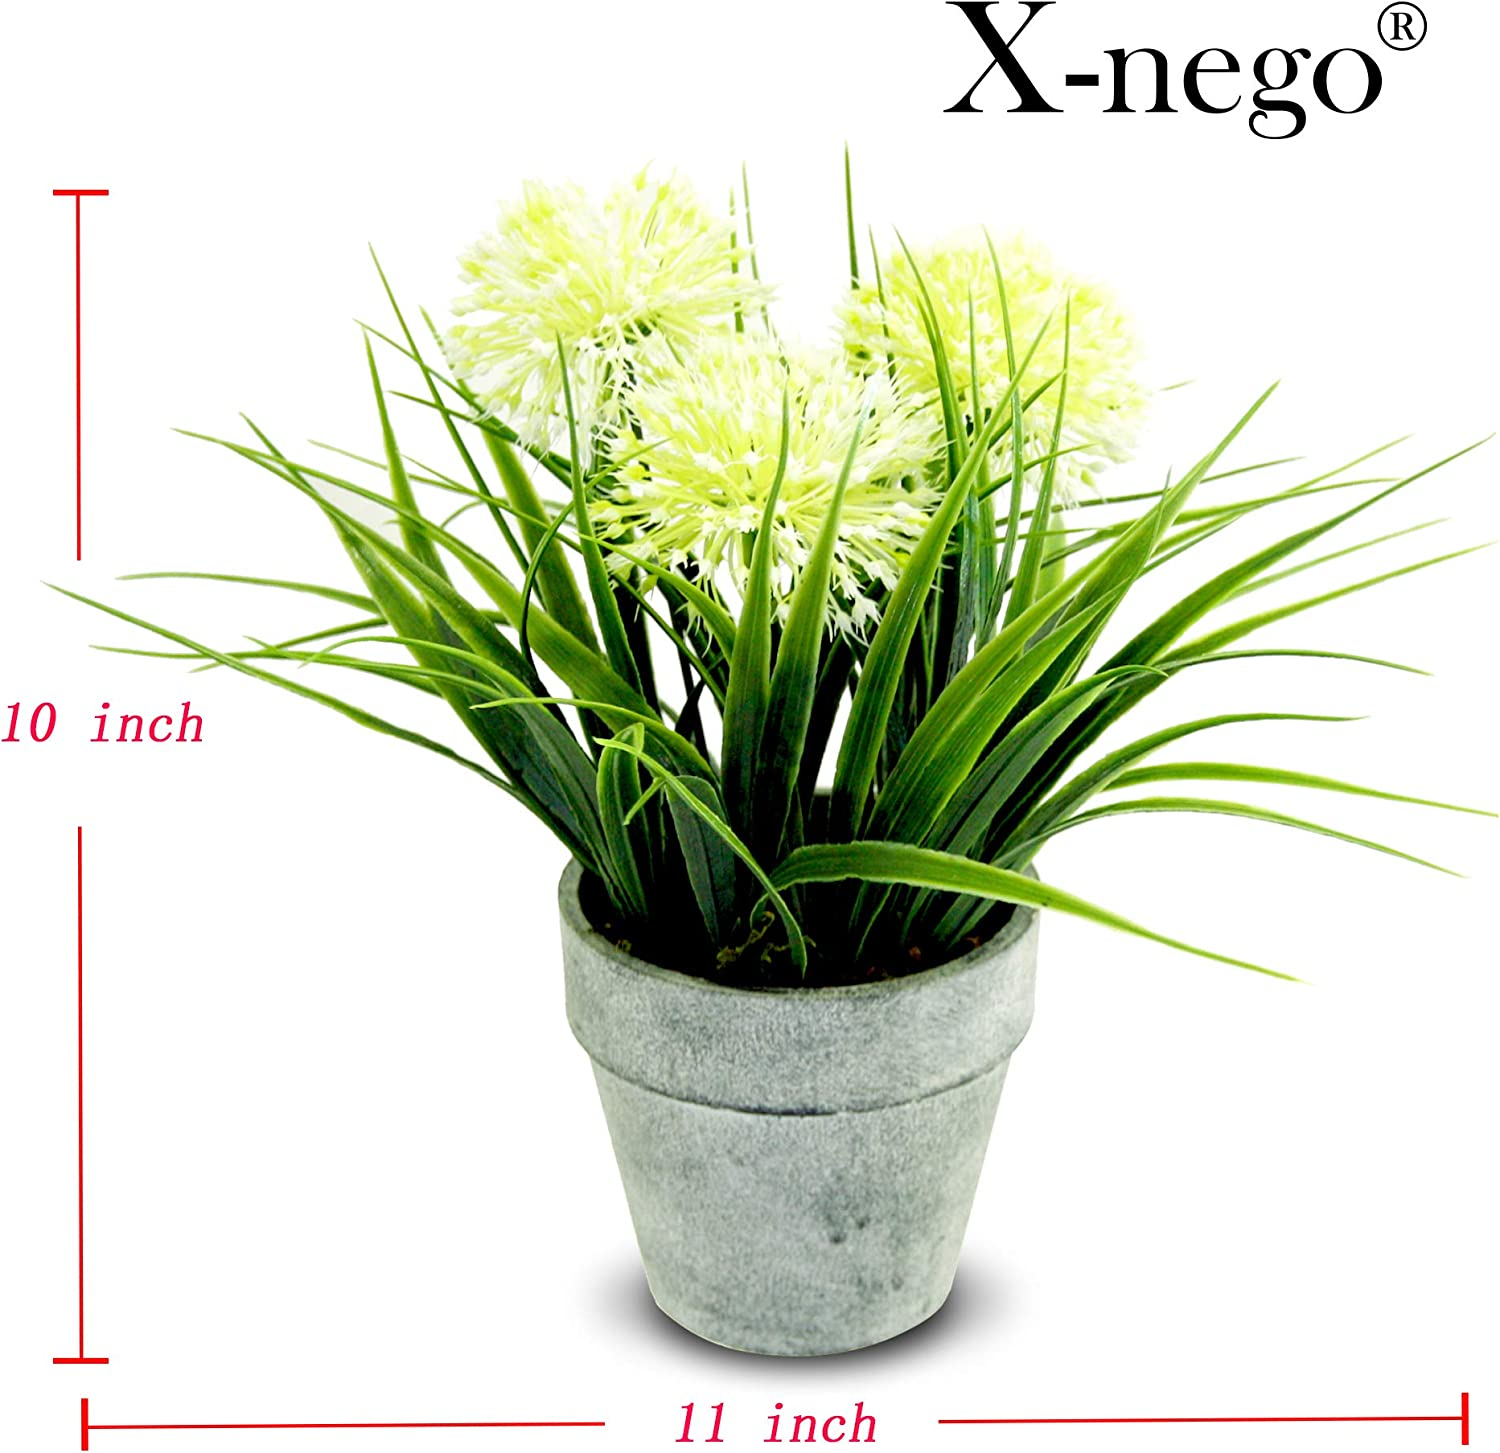 Artificial Plants Faux Succulent Potted Fake Plants with Gray Imitation Stone Pots for Home Office Tabletop Decoration